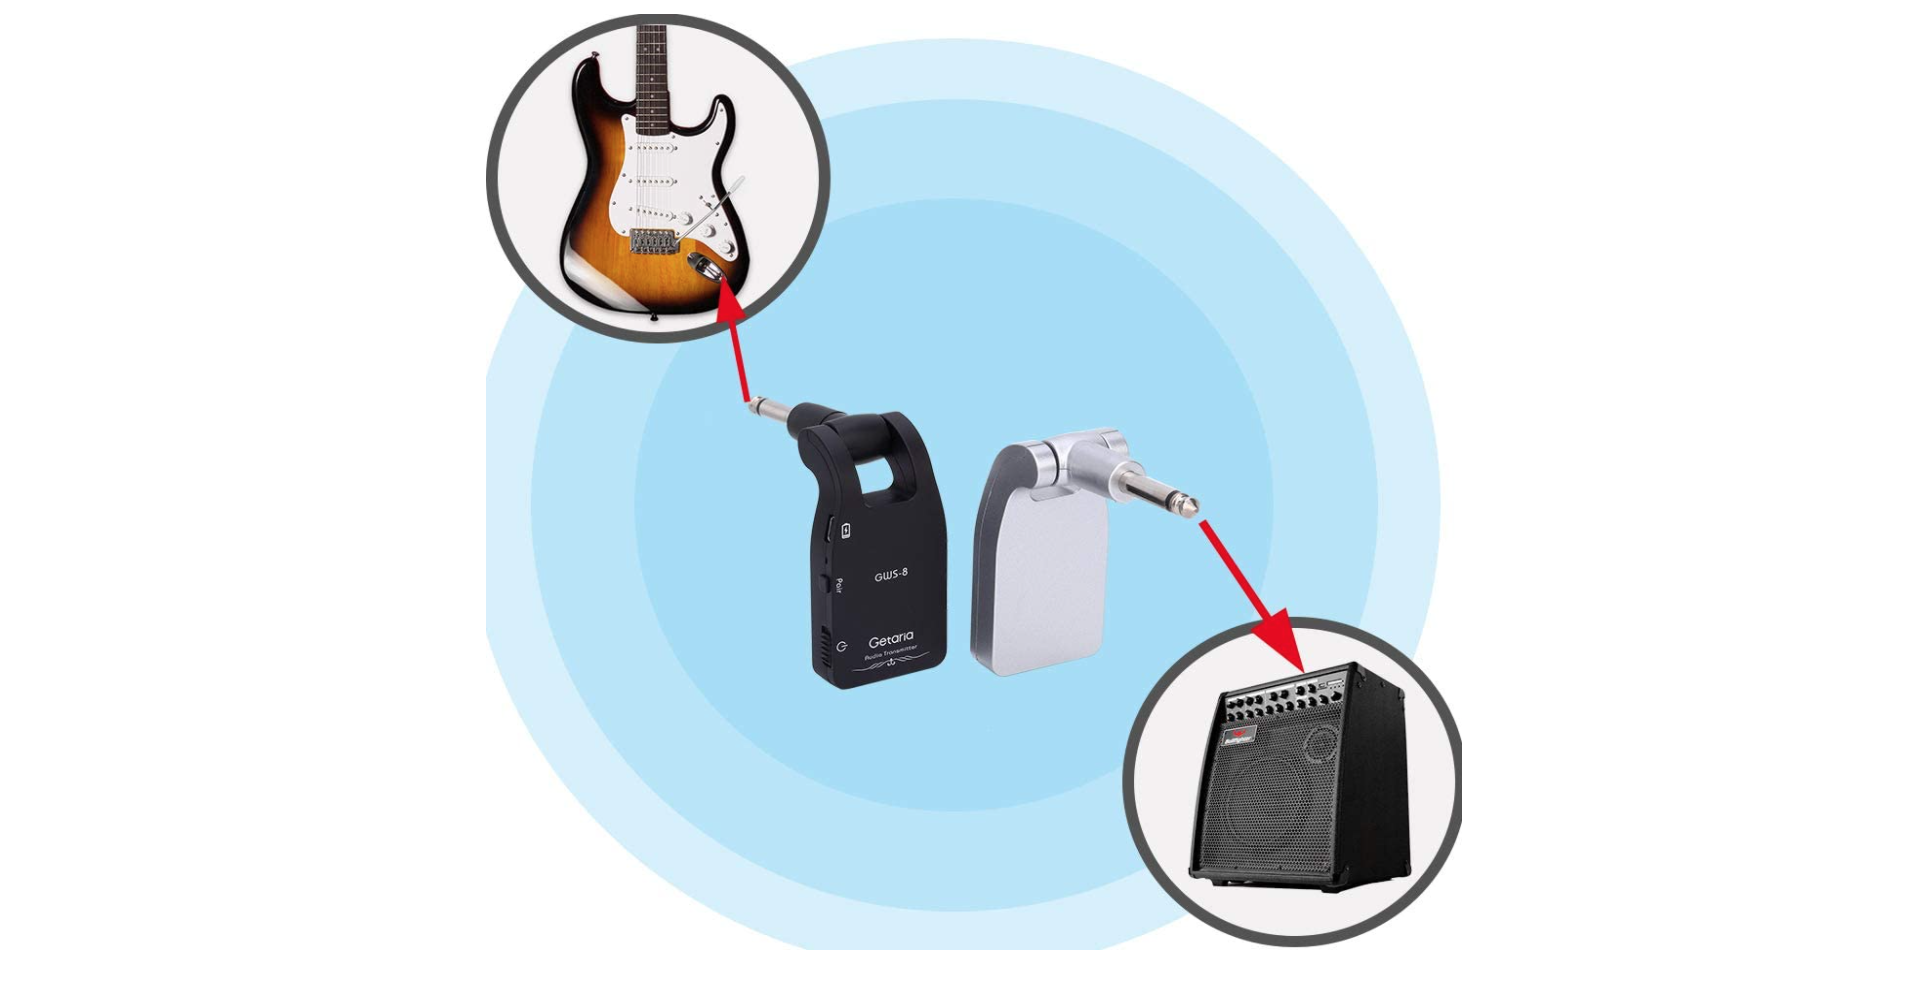 Best Bluetooth Guitar Jacks of 2021